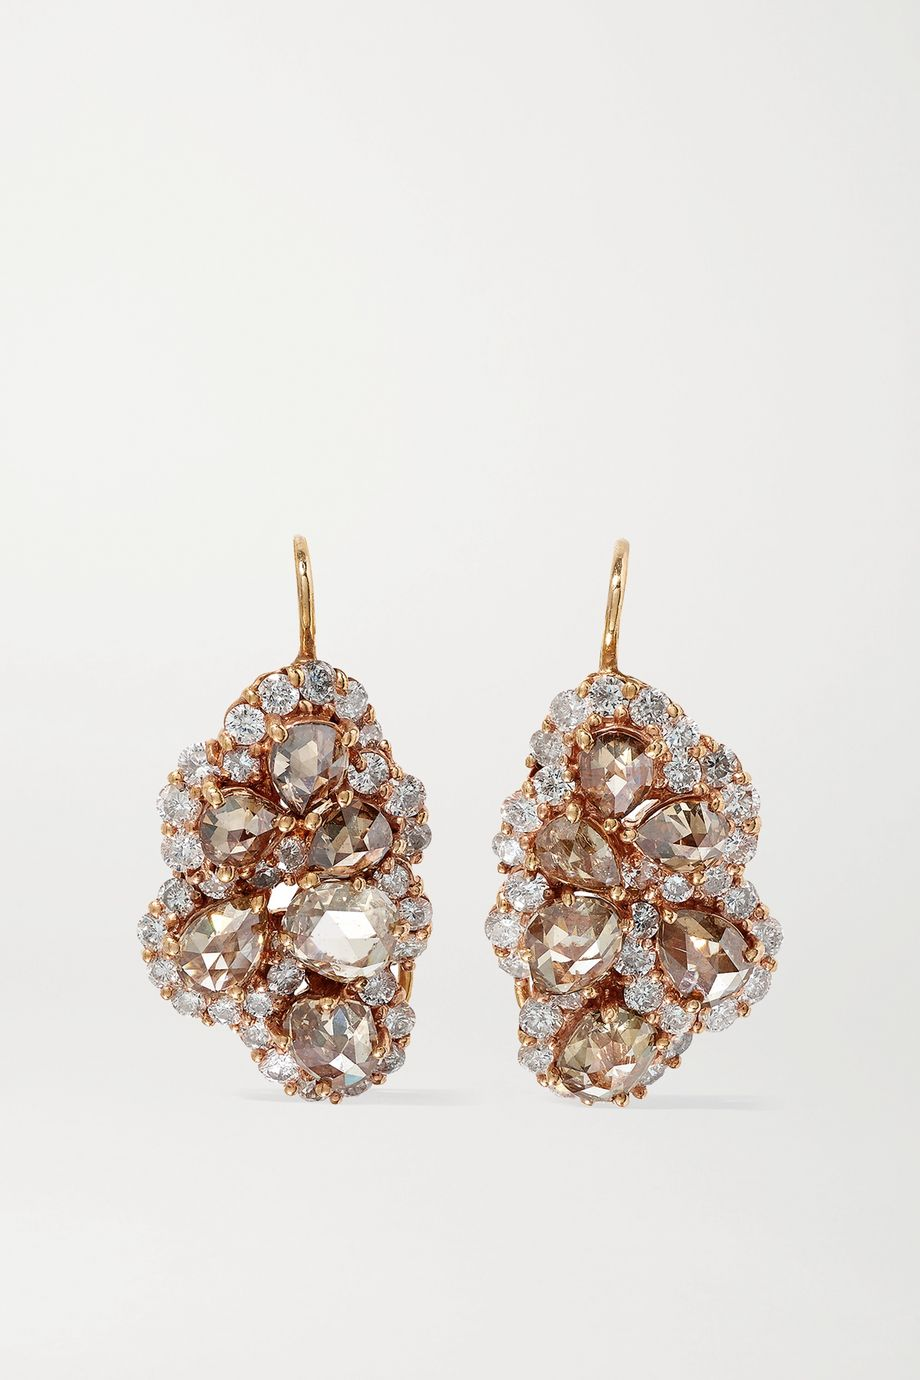 Lorraine Schwartz 18-karat rose gold diamond earrings